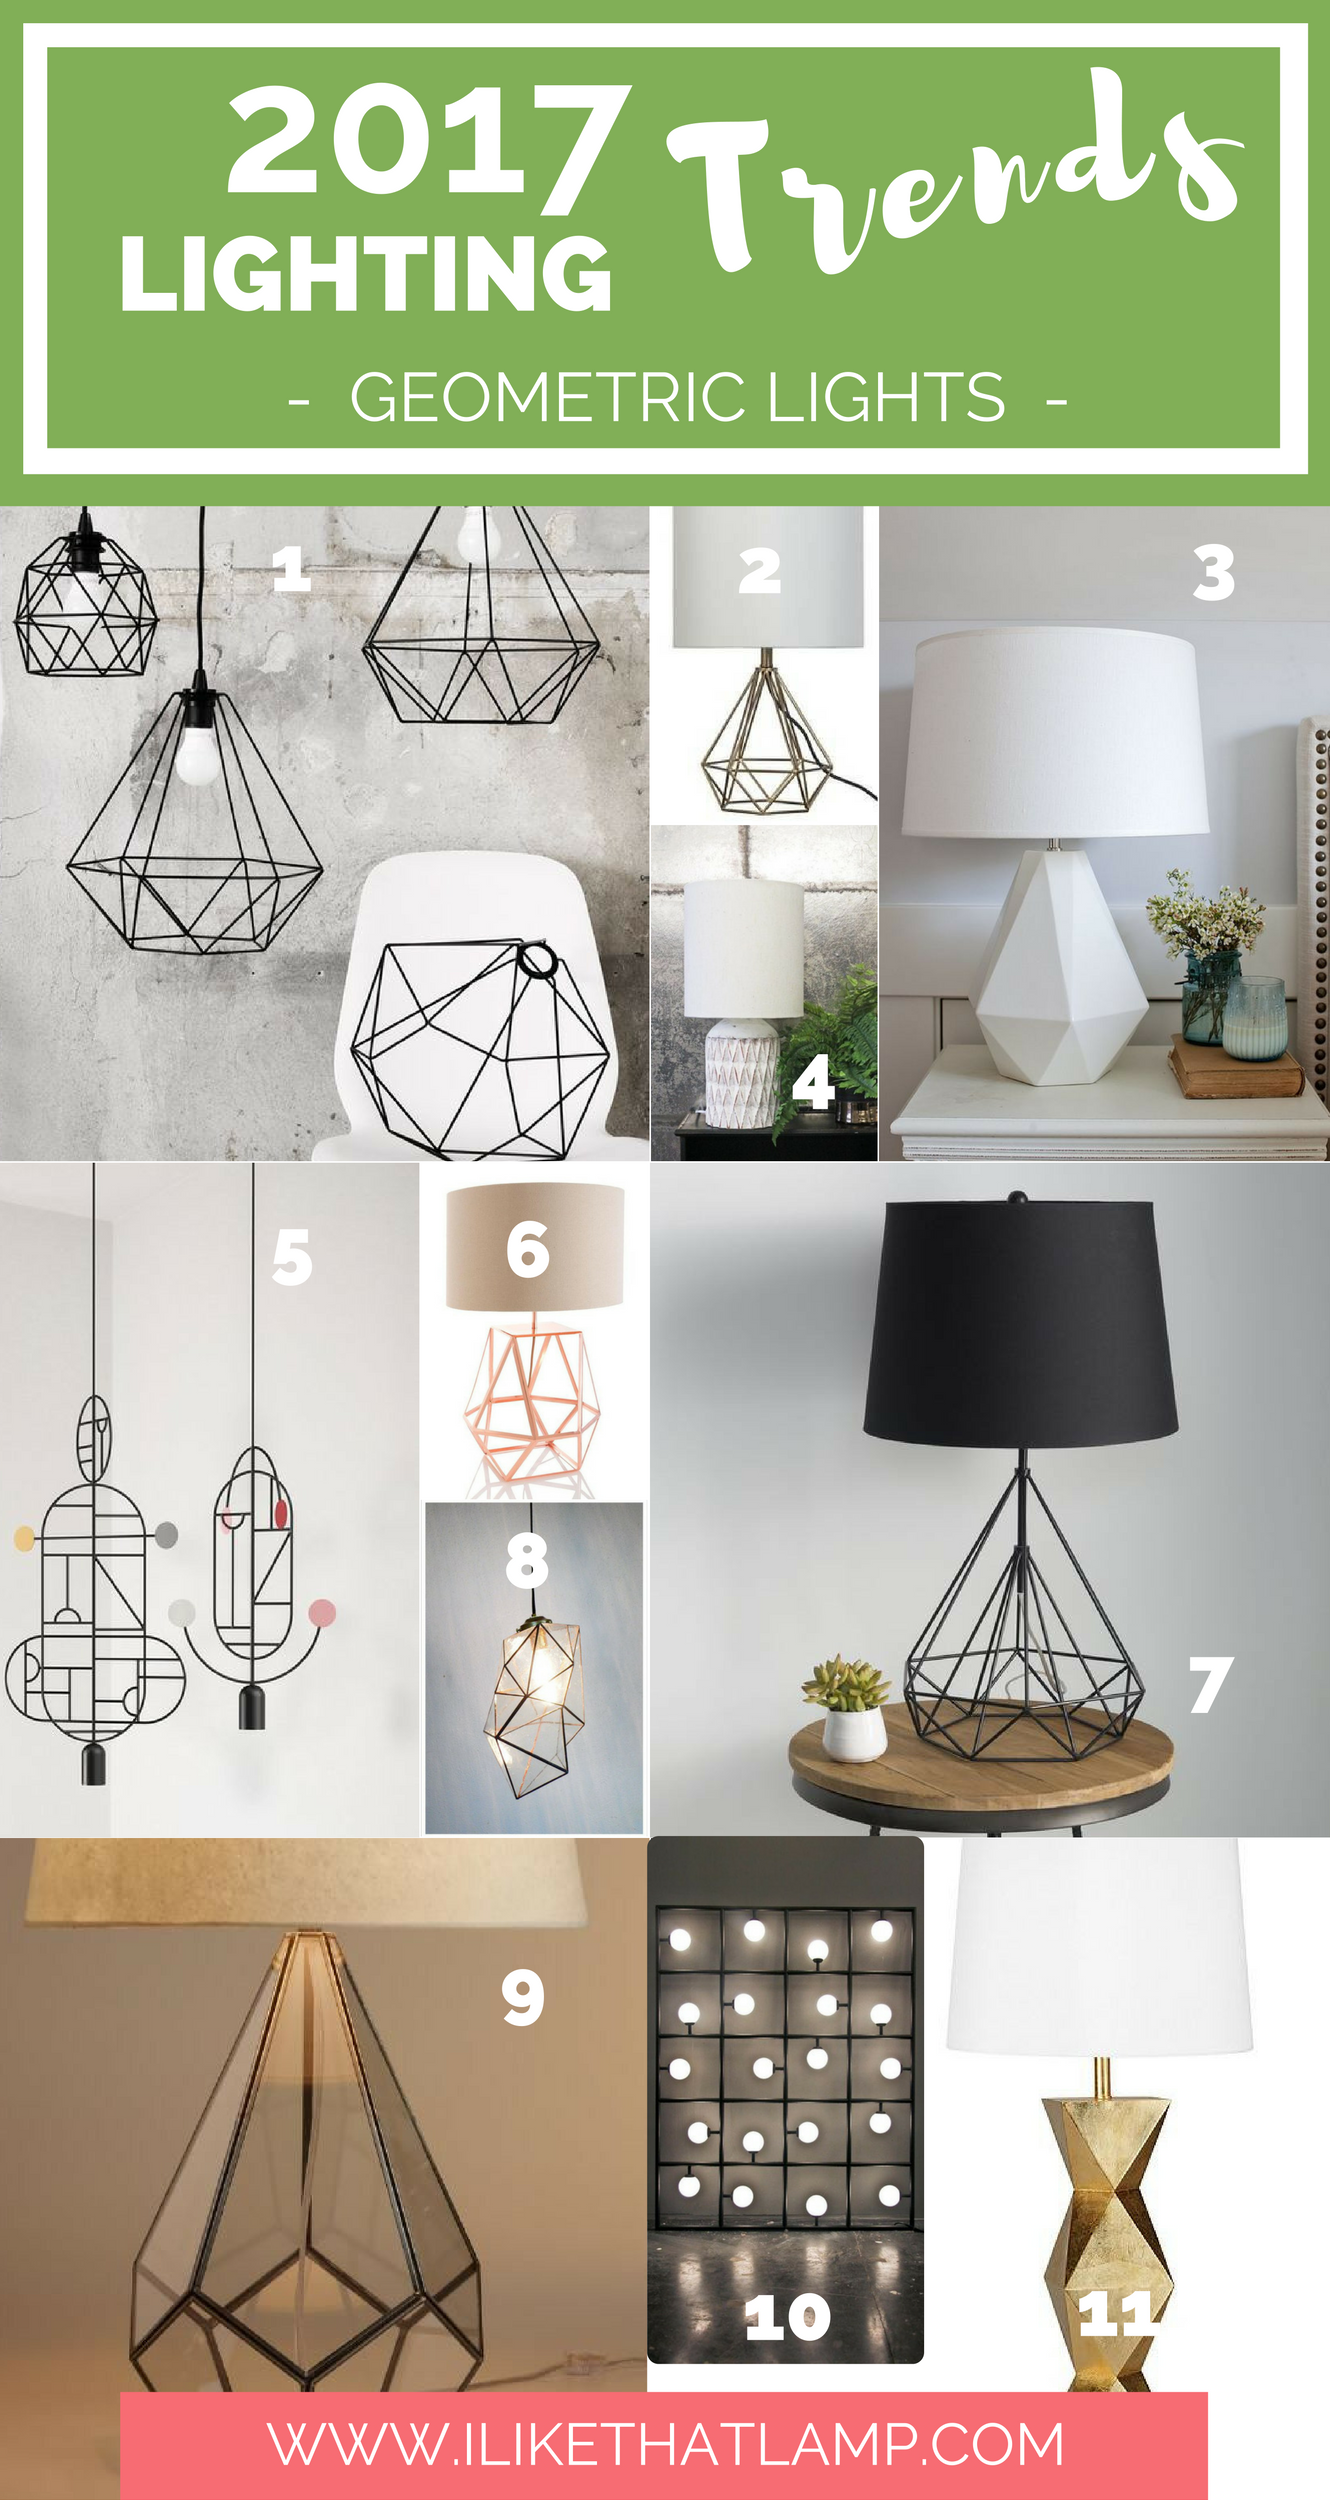 The 2017 lighting trends diy crafters will love read all at www ilikethatlamp com